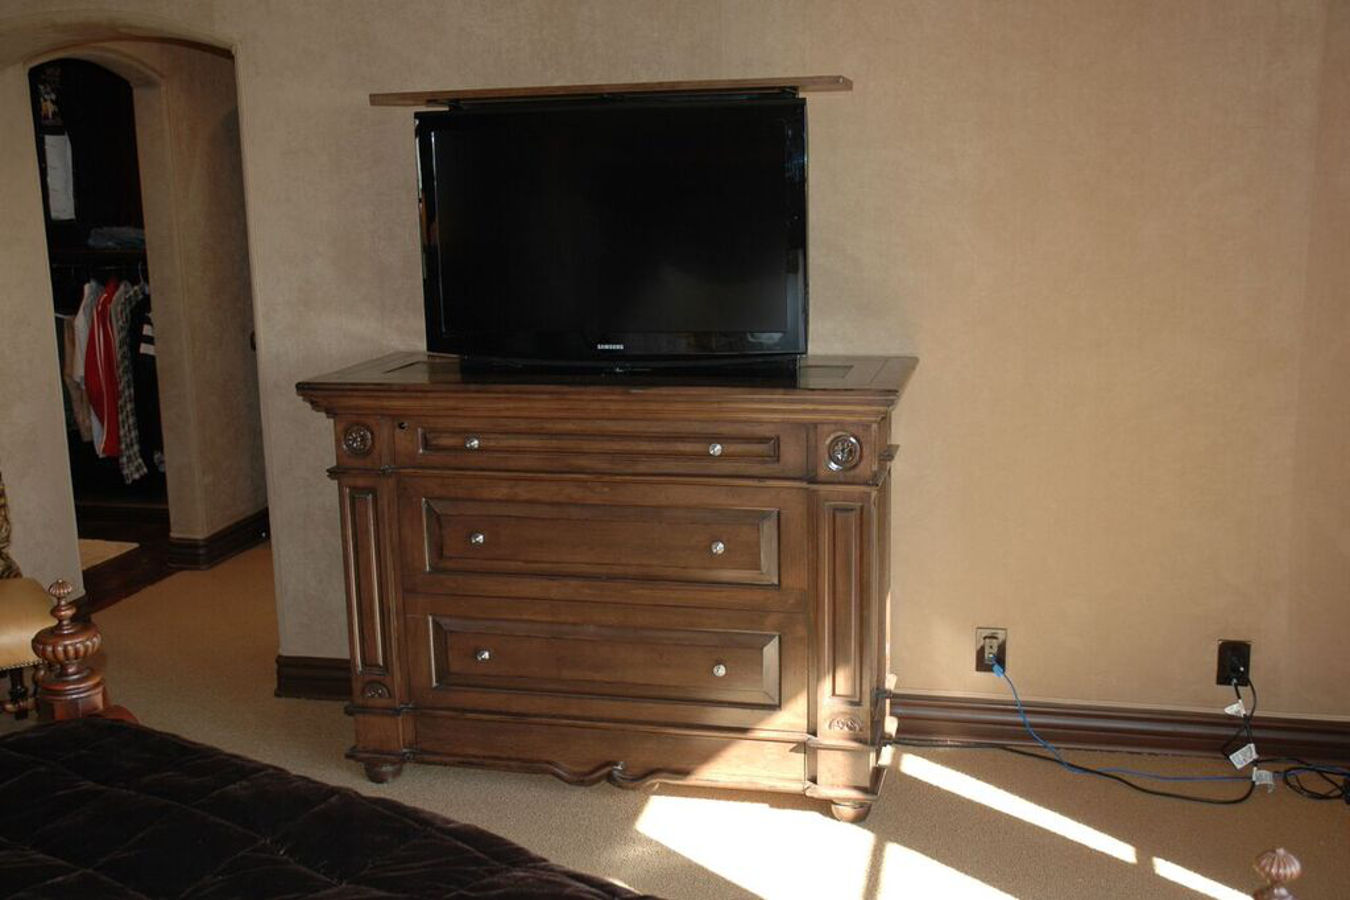 file turned bcecbcddcaed repurposed stand gallery unnamed media cabinet cafecaeeff for tv into dresser has